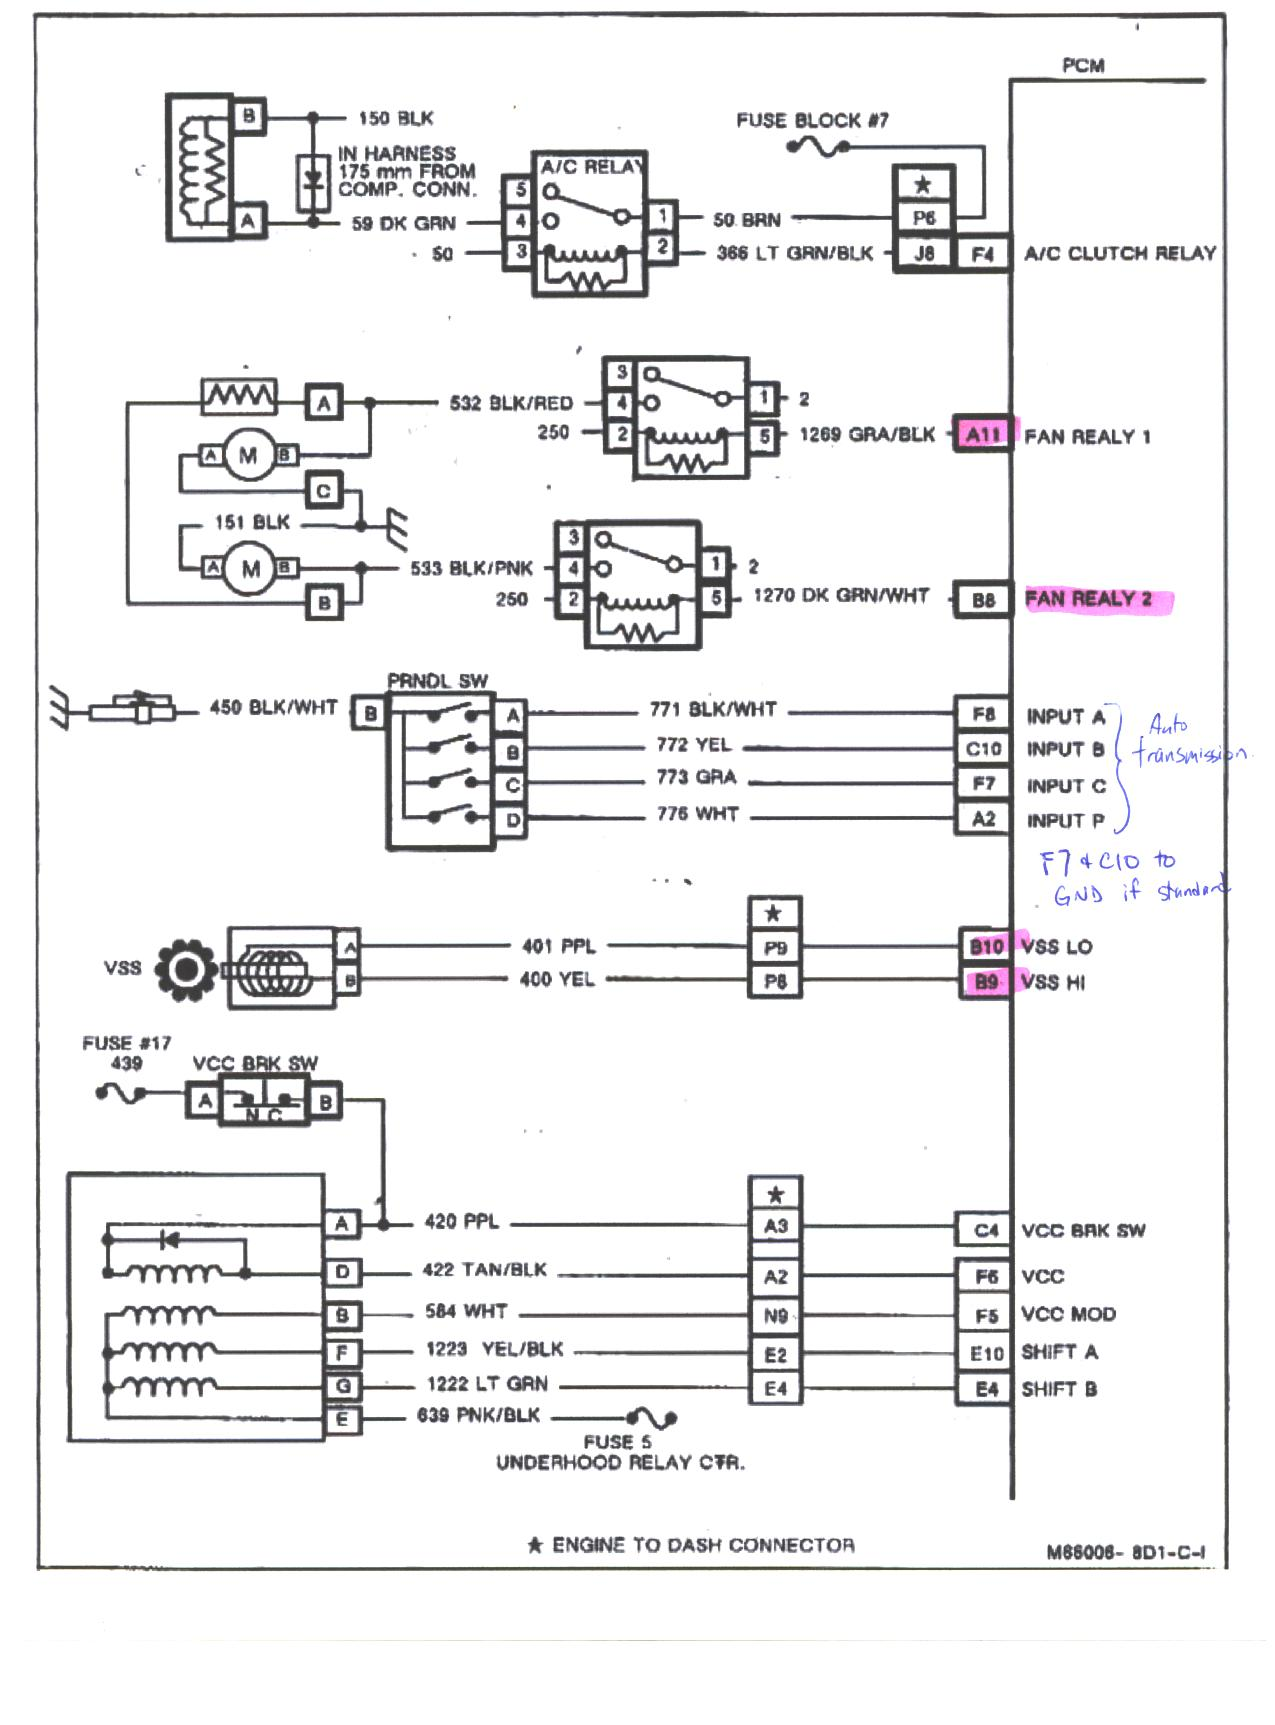 2002 Cadillac Eldorado Engine Diagram